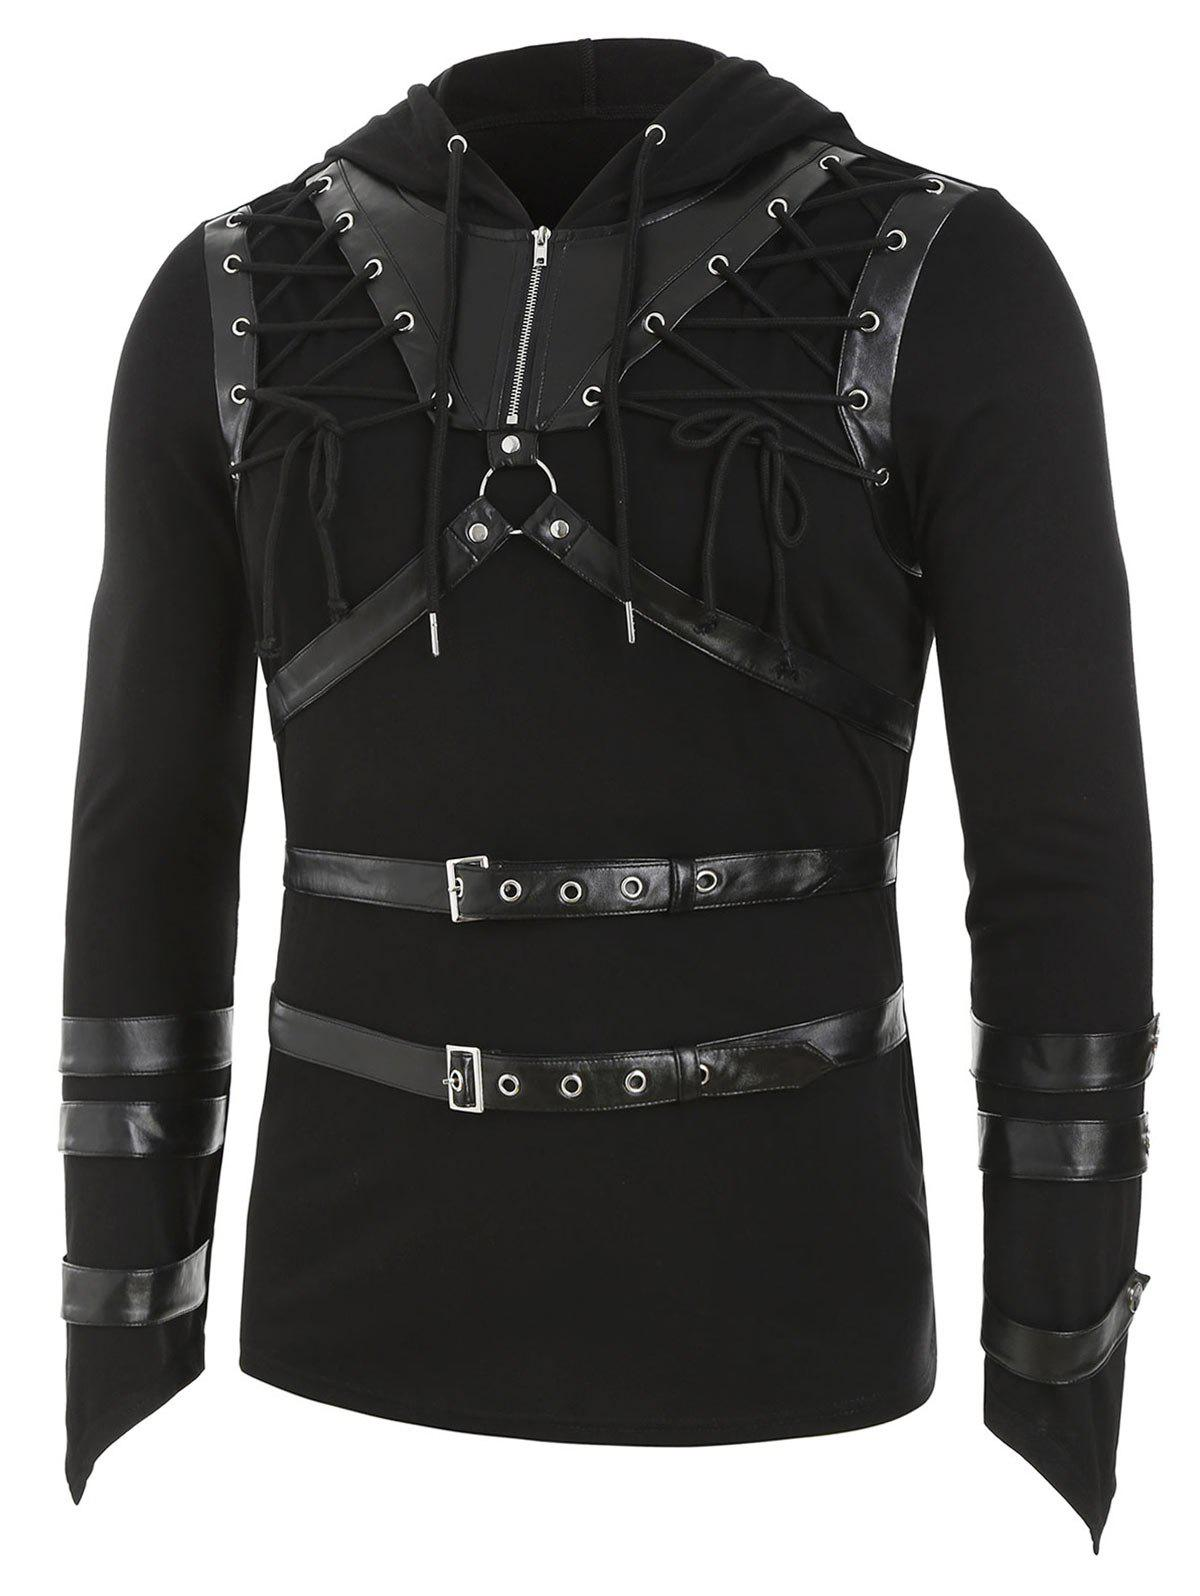 Store Faux Leather Strap Harness Insert Lace-up Hoodie